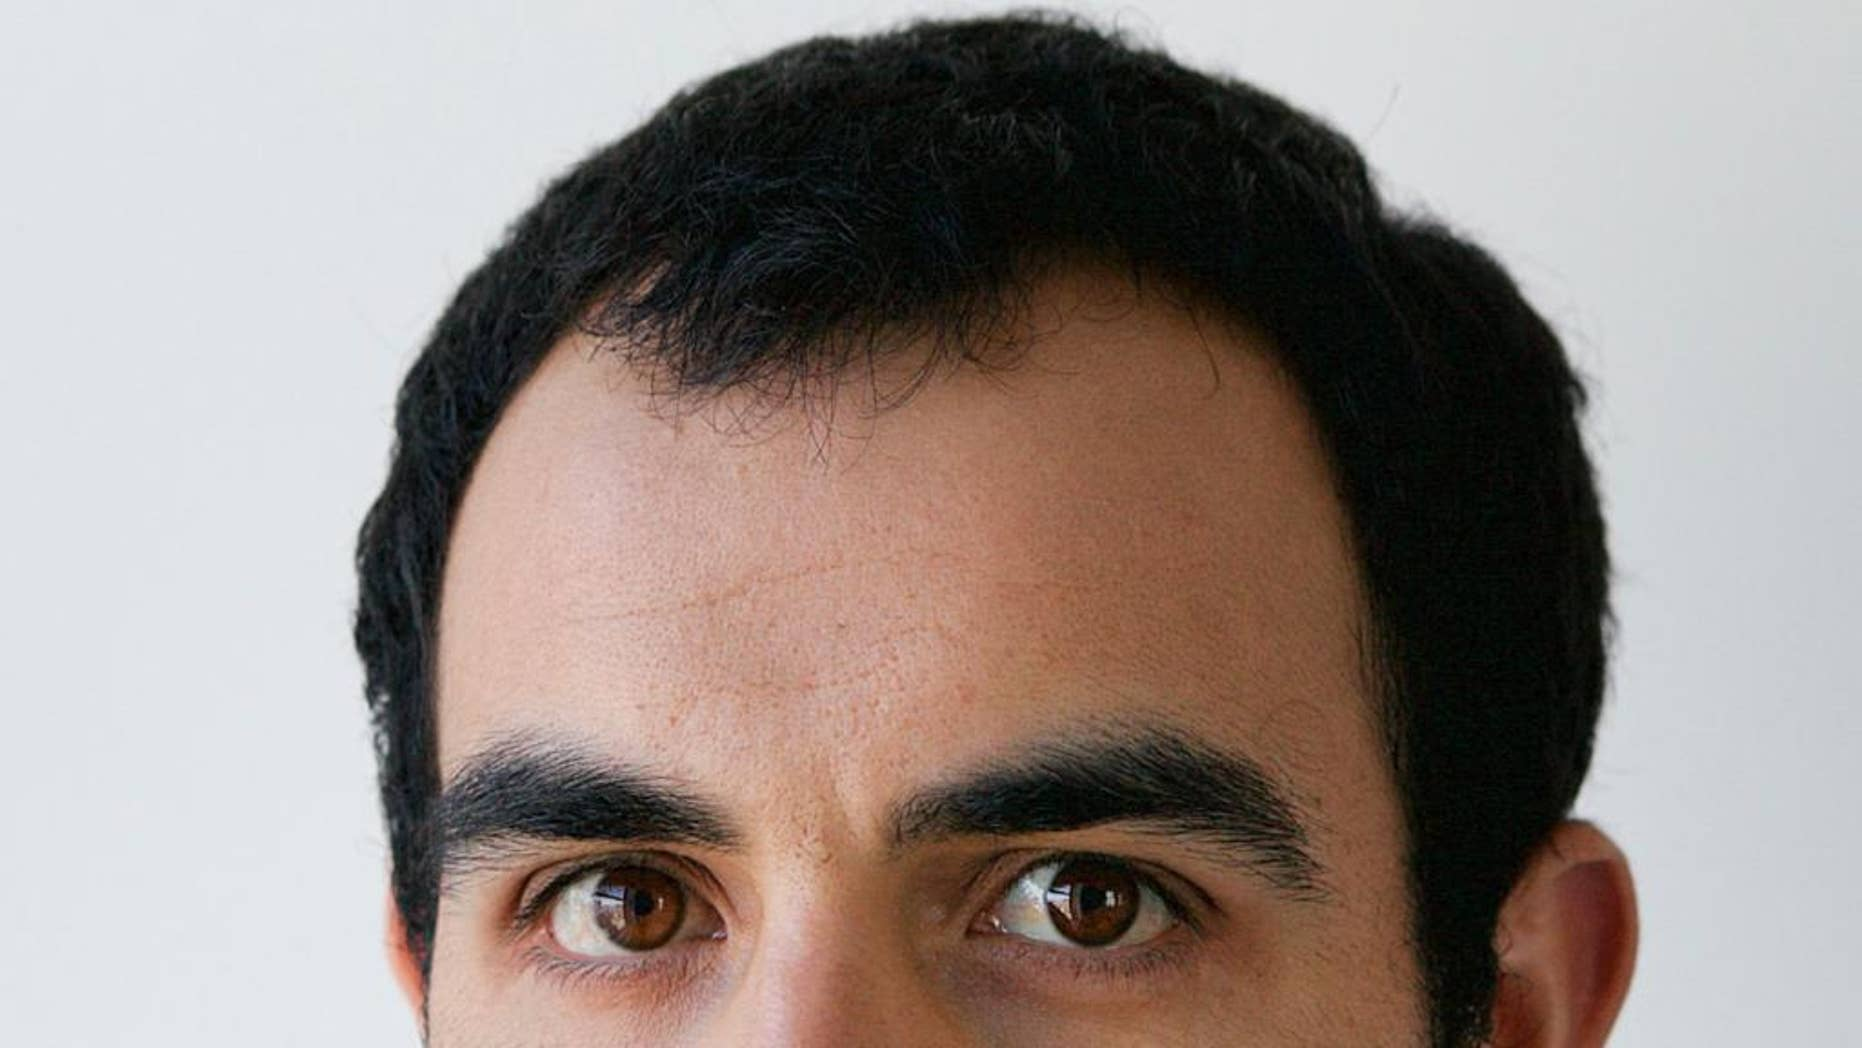 """This undated photo provided by Human Rights Watch on Friday, Feb. 24, 2017 shows Omar Shakir, the group's New York-based Israel and Palestine director. Israeli authorities have rejected a request from Human Rights Watch to grant Shakir a work permit, accusing the group of engaging in Palestinian """"propaganda."""" The decision was Israel's latest step against human rights groups and other advocacy organizations that it accuses of bias against the Jewish state. (Human Rights Watch via AP)"""